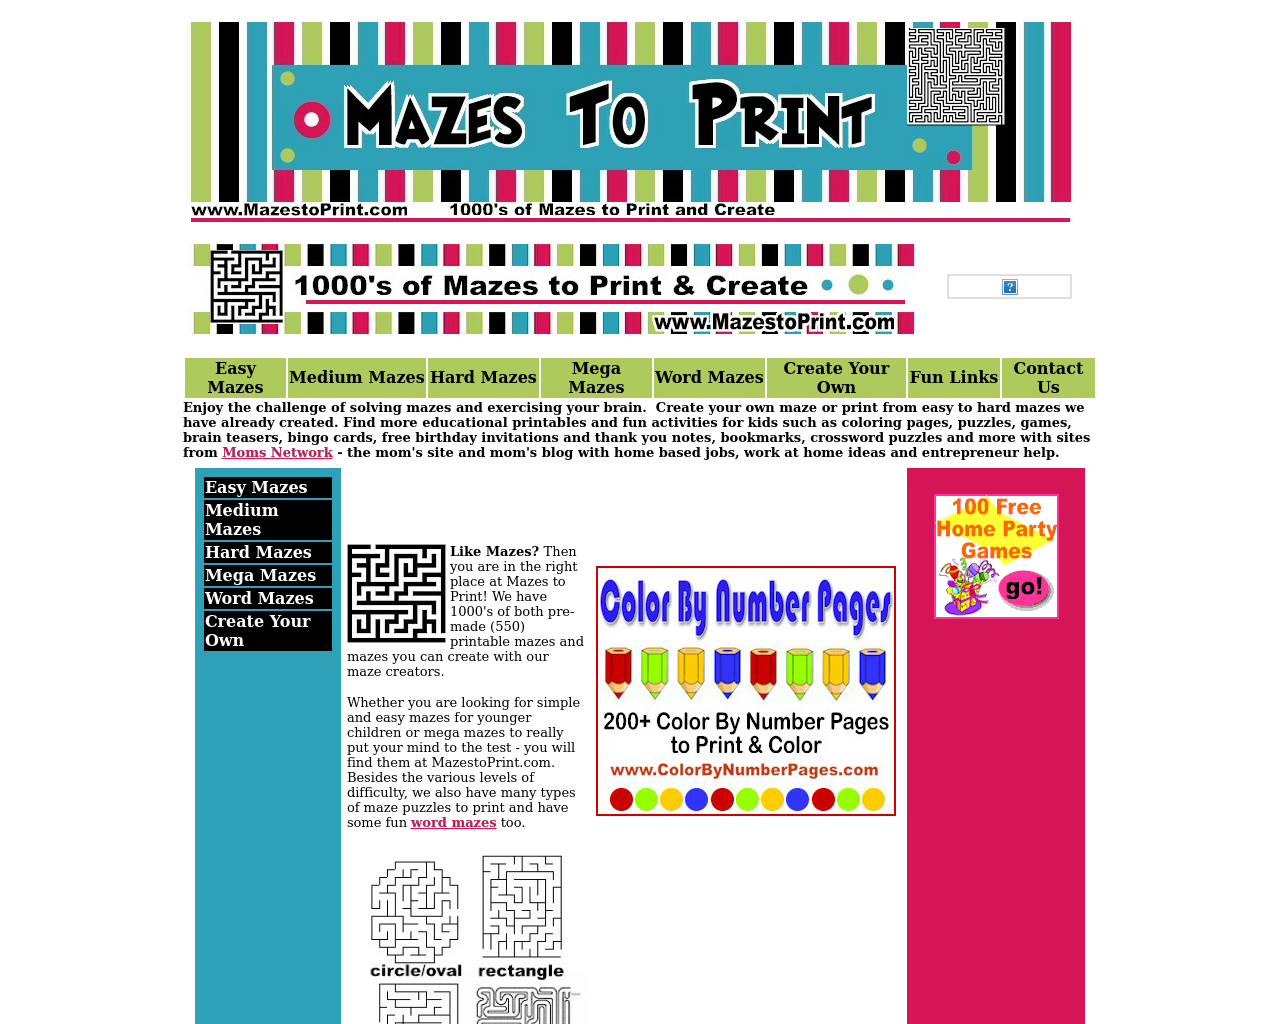 Mazes-To-Print-Advertising-Reviews-Pricing